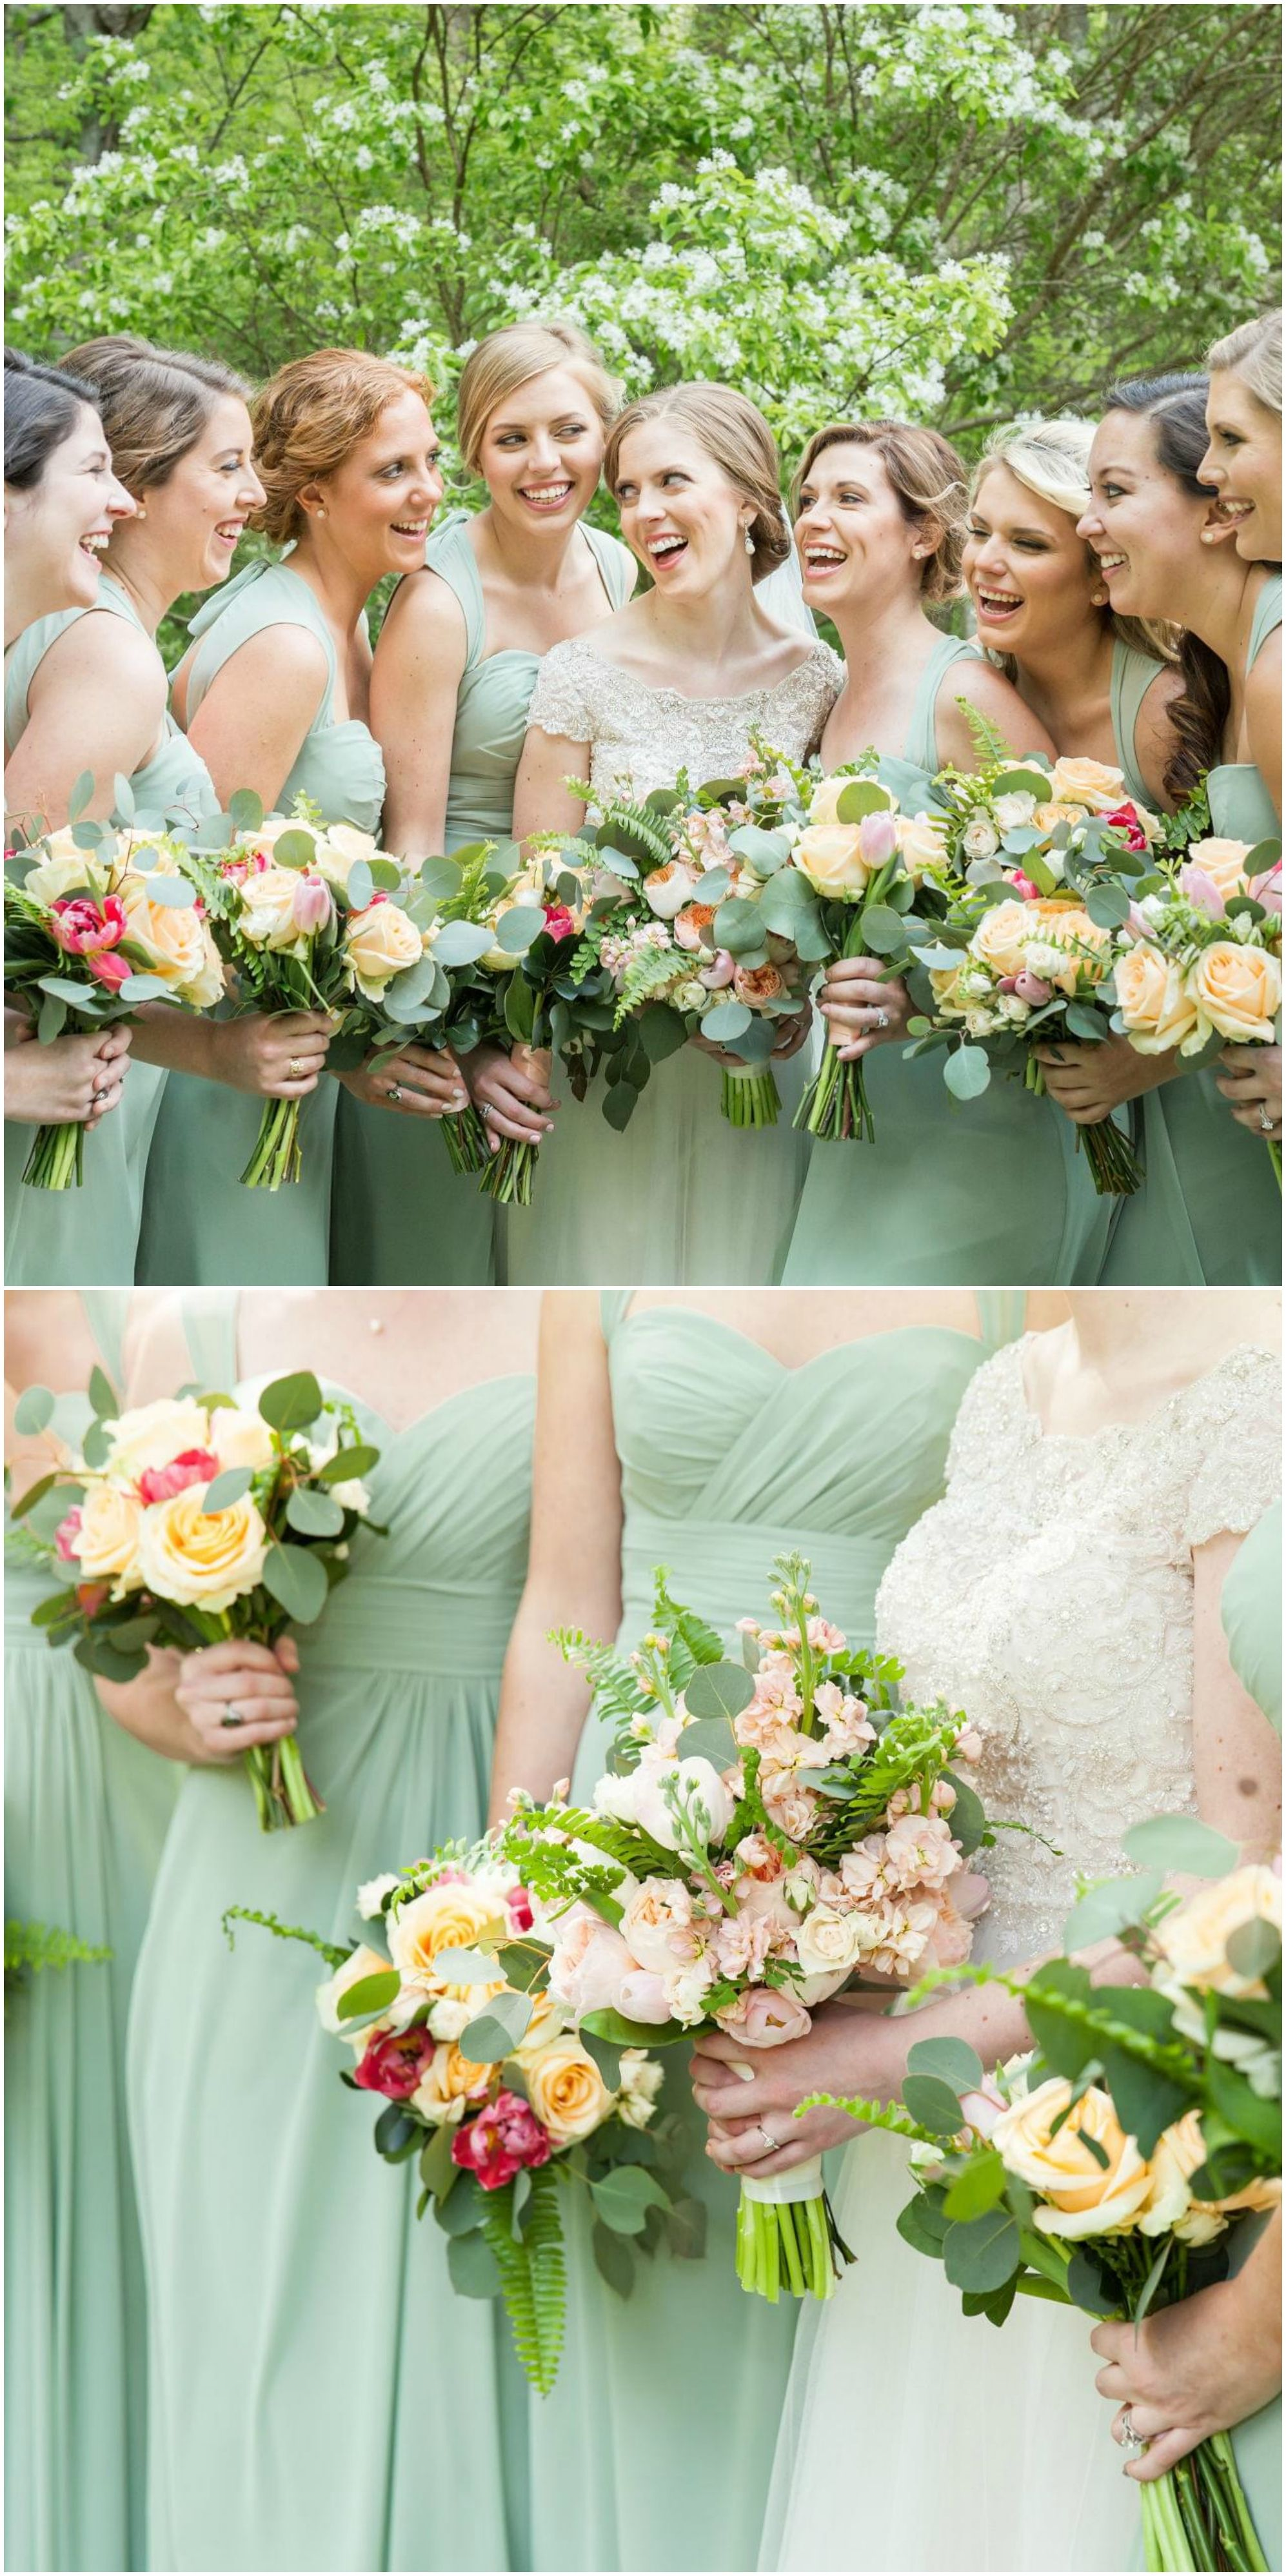 The smarter way to wed chiffon bridesmaid dresses green wedding bridal style spring green chiffon bridesmaid dress long gowns spring wedding ombrellifo Image collections